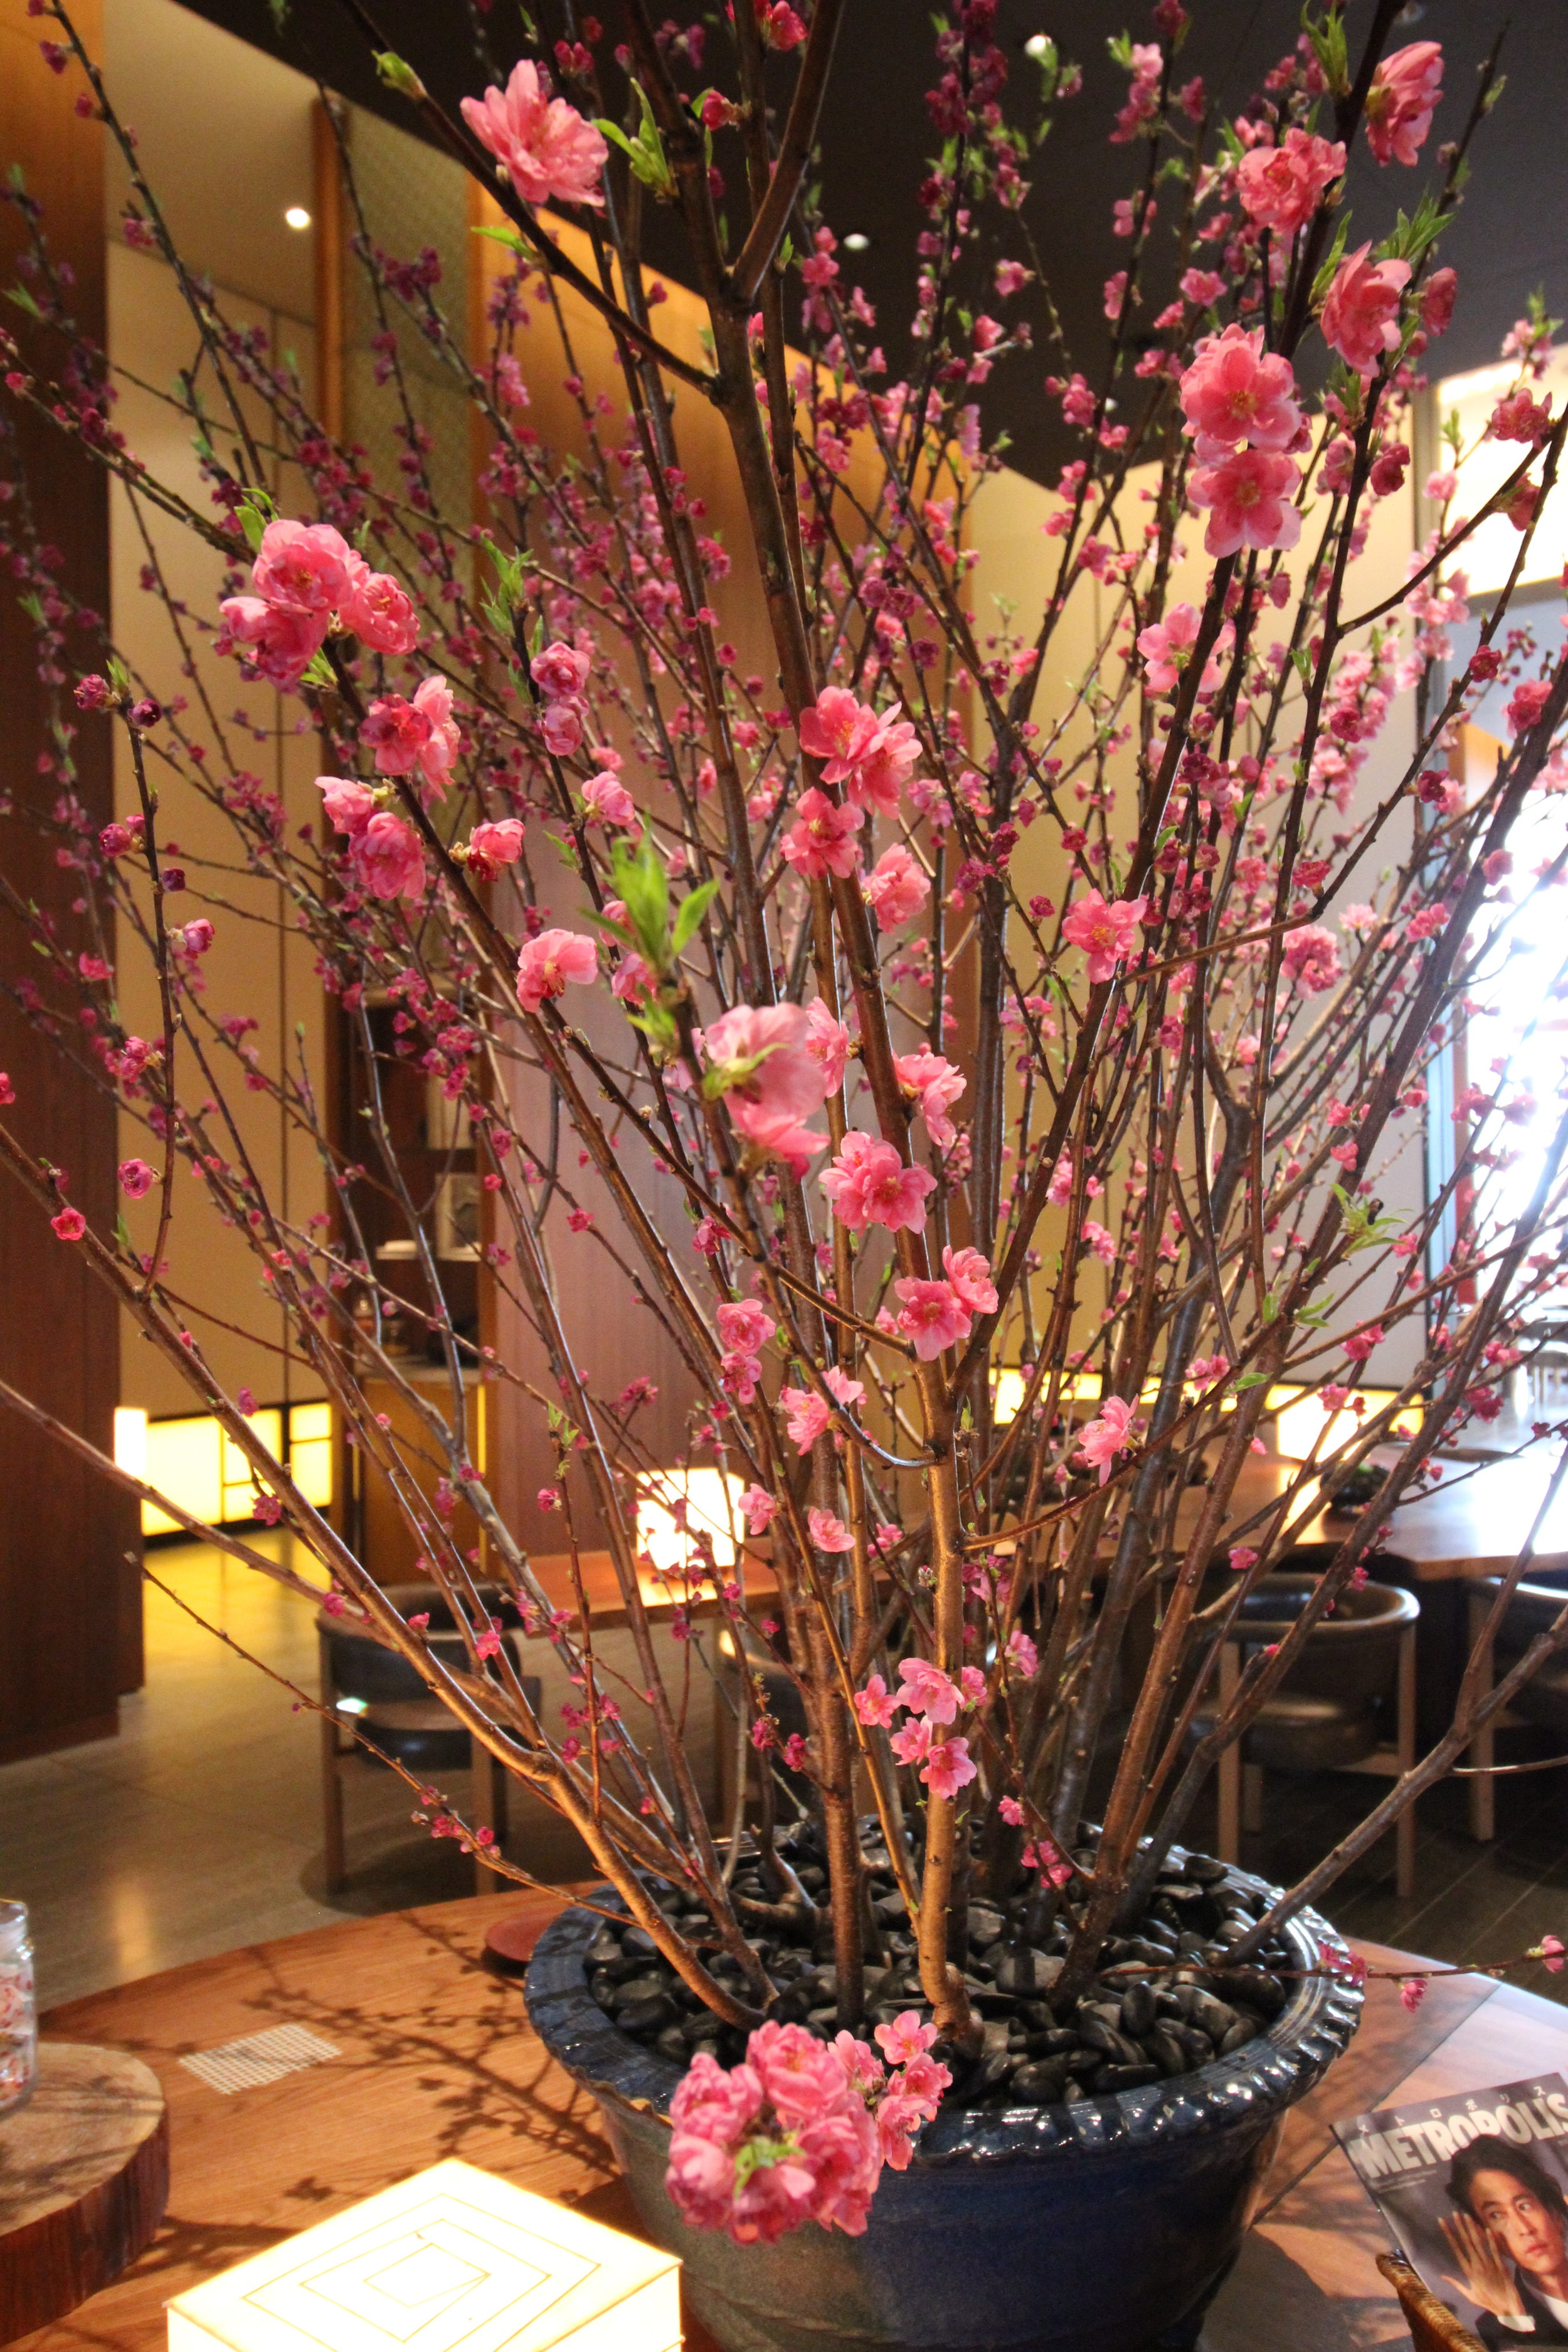 Plum blossoms—just don't ask the concierge where to find them in public.